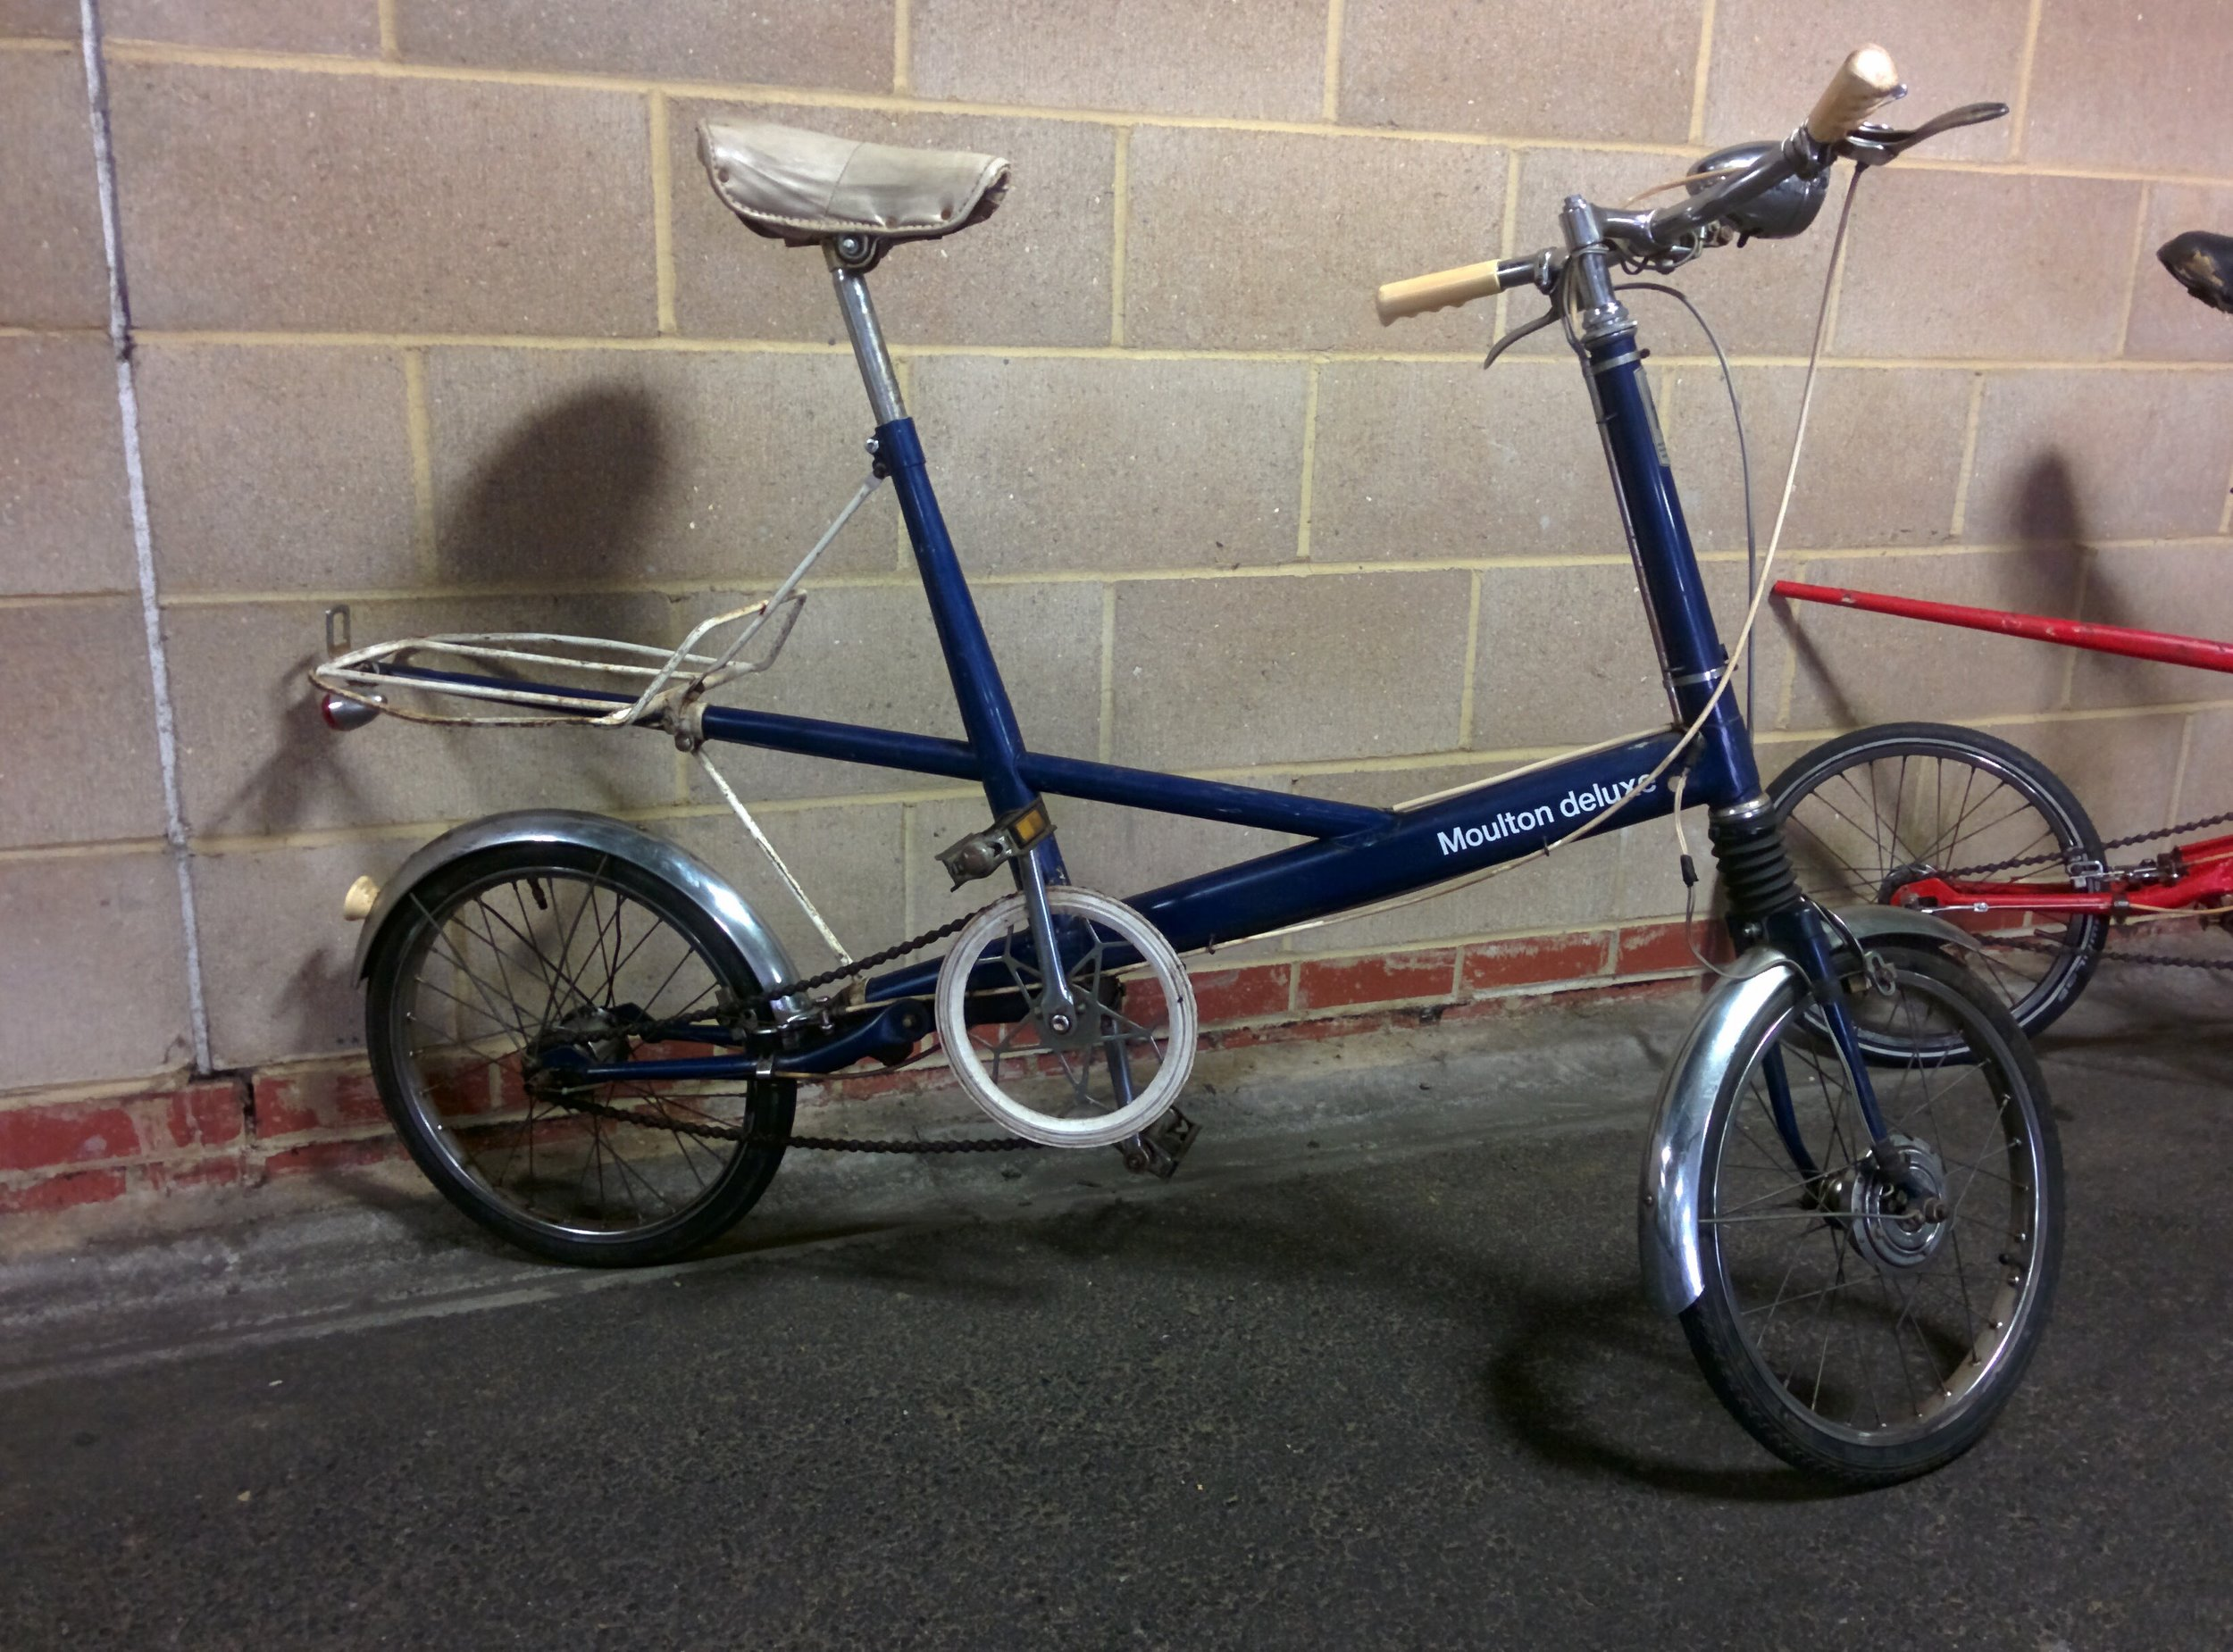 1965 Moulton Deluxe (Dynahub)  - For Sale   Servicing -  Full drivetrain service and bottom bracket refit   August / September 2016